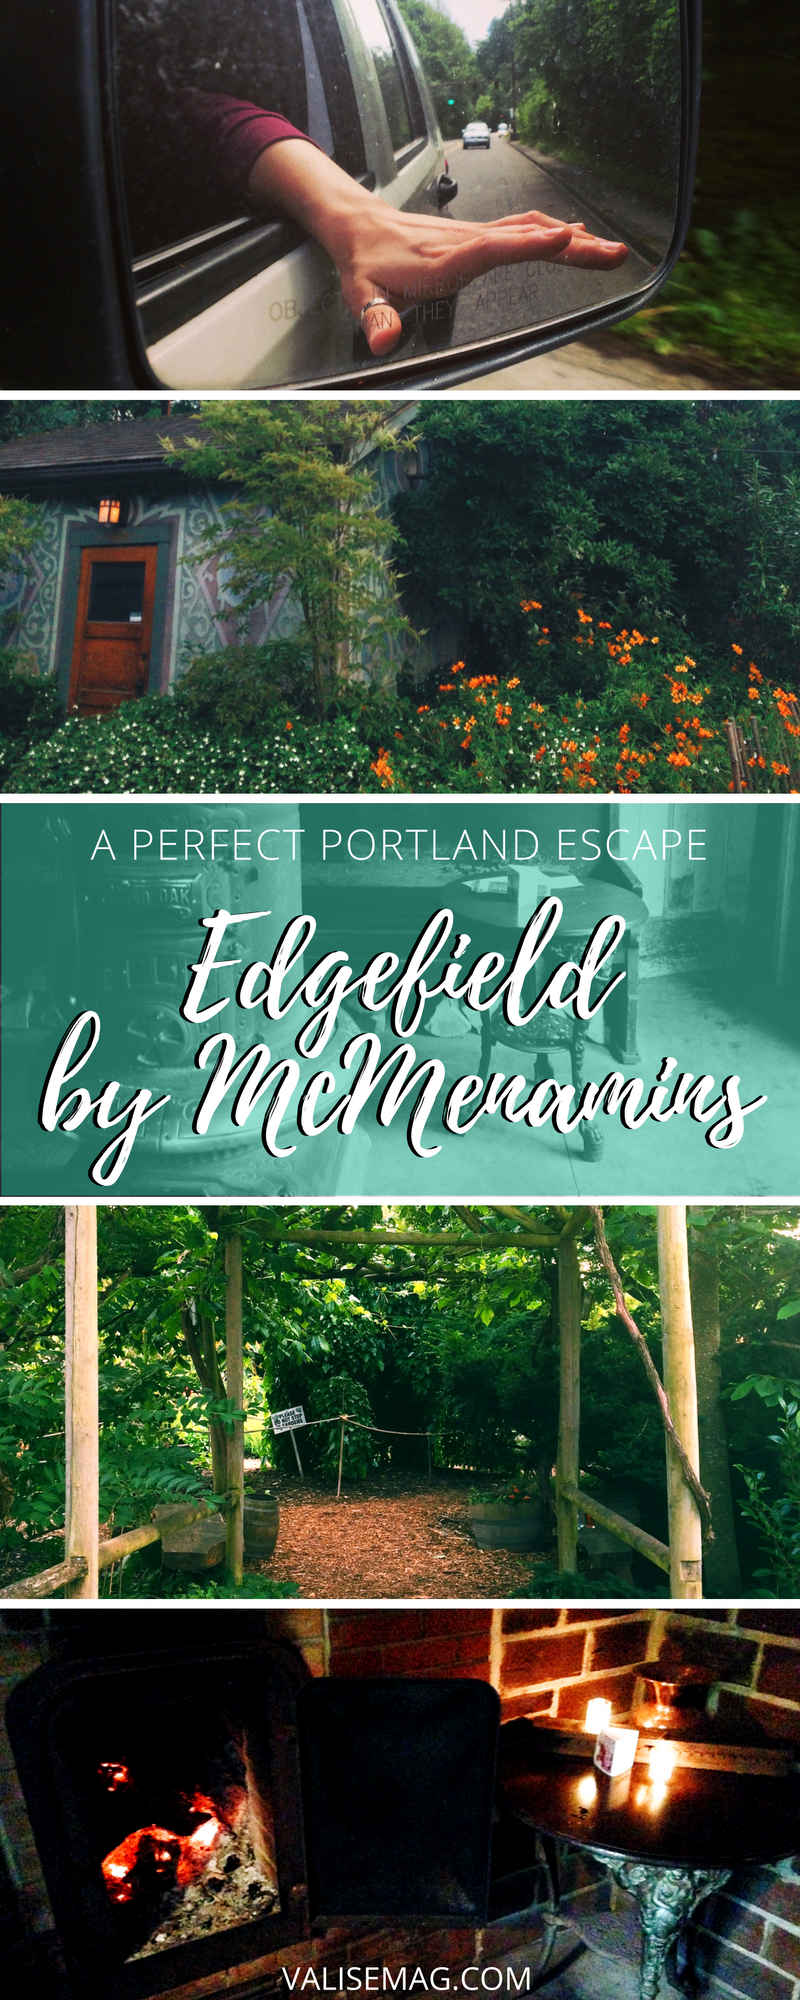 It's hard to find places like Edgefield. This Portland-area watering hole is a perfect escape from the city, and the hoards of tourists who love visiting.